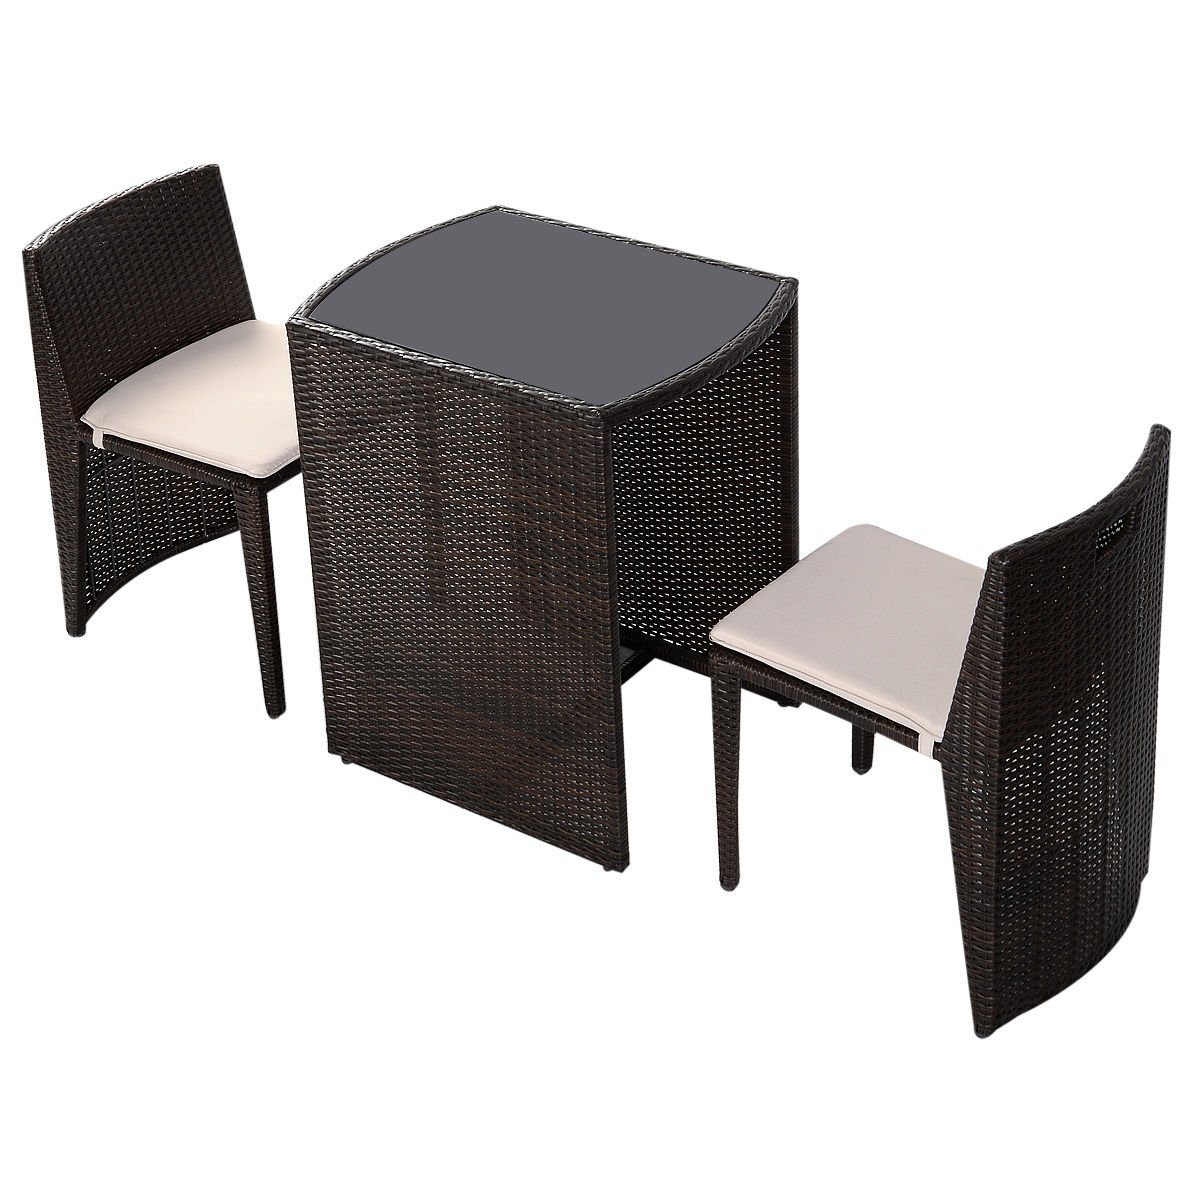 GHP Brown Wicker Cushioned Outdoor Garden Patio Chairs & Table Furniture Set